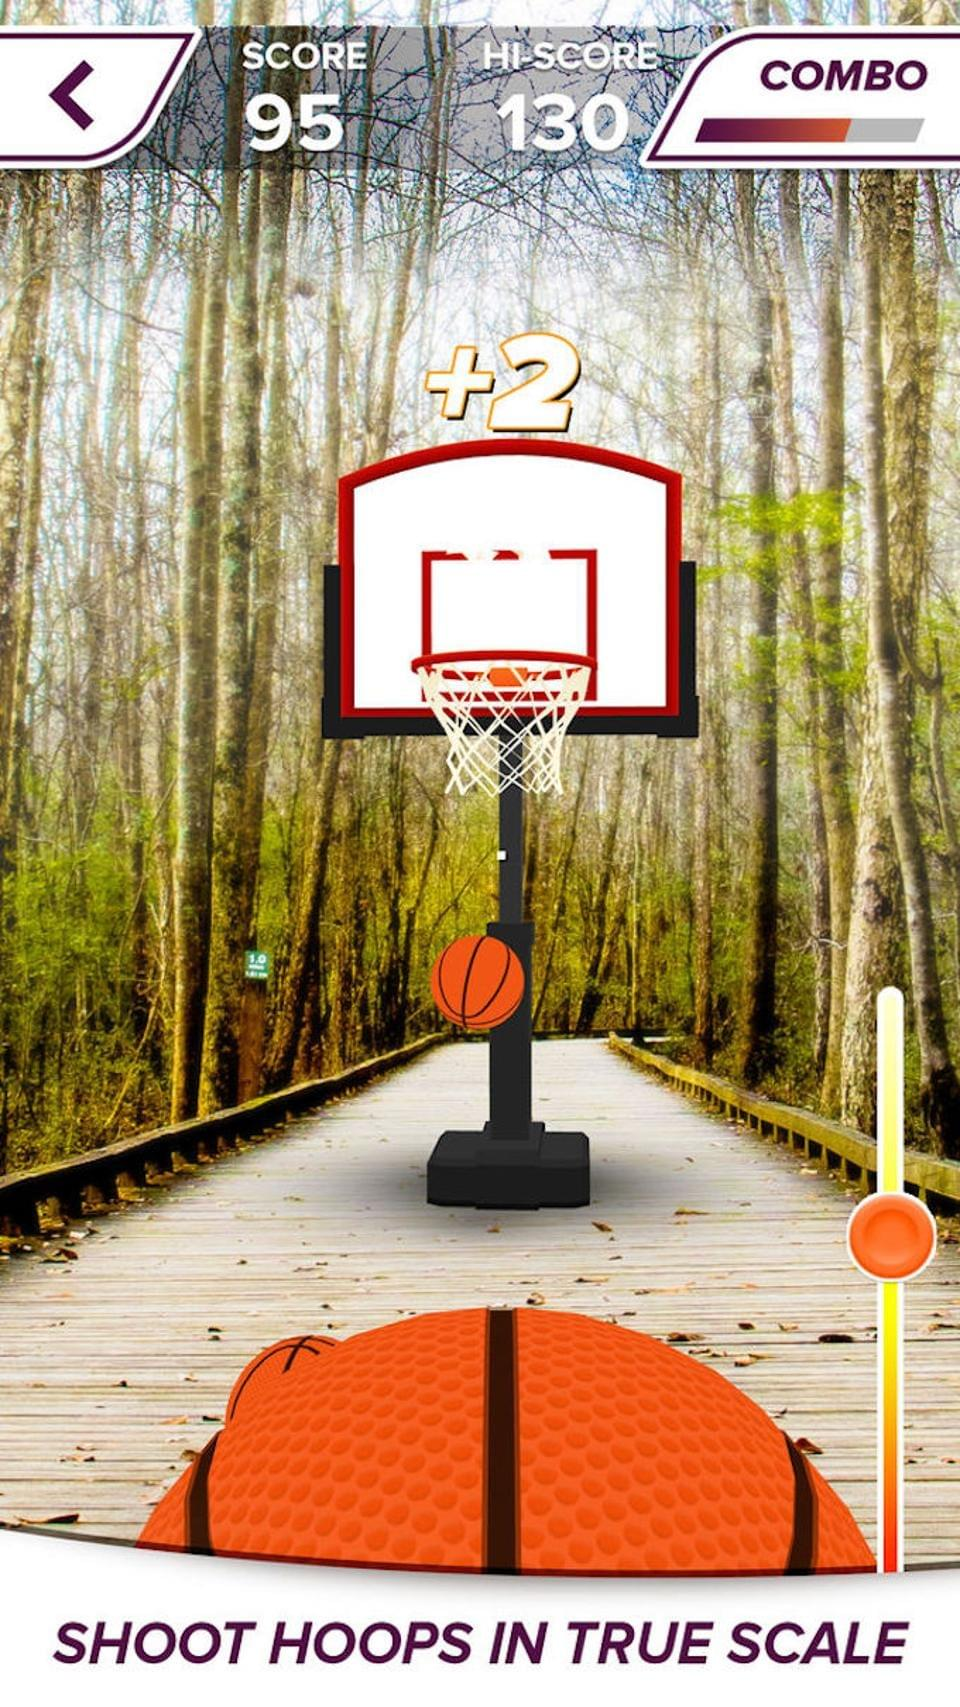 AR Sports Basketball is one of the more amusing free diversions in the app store.